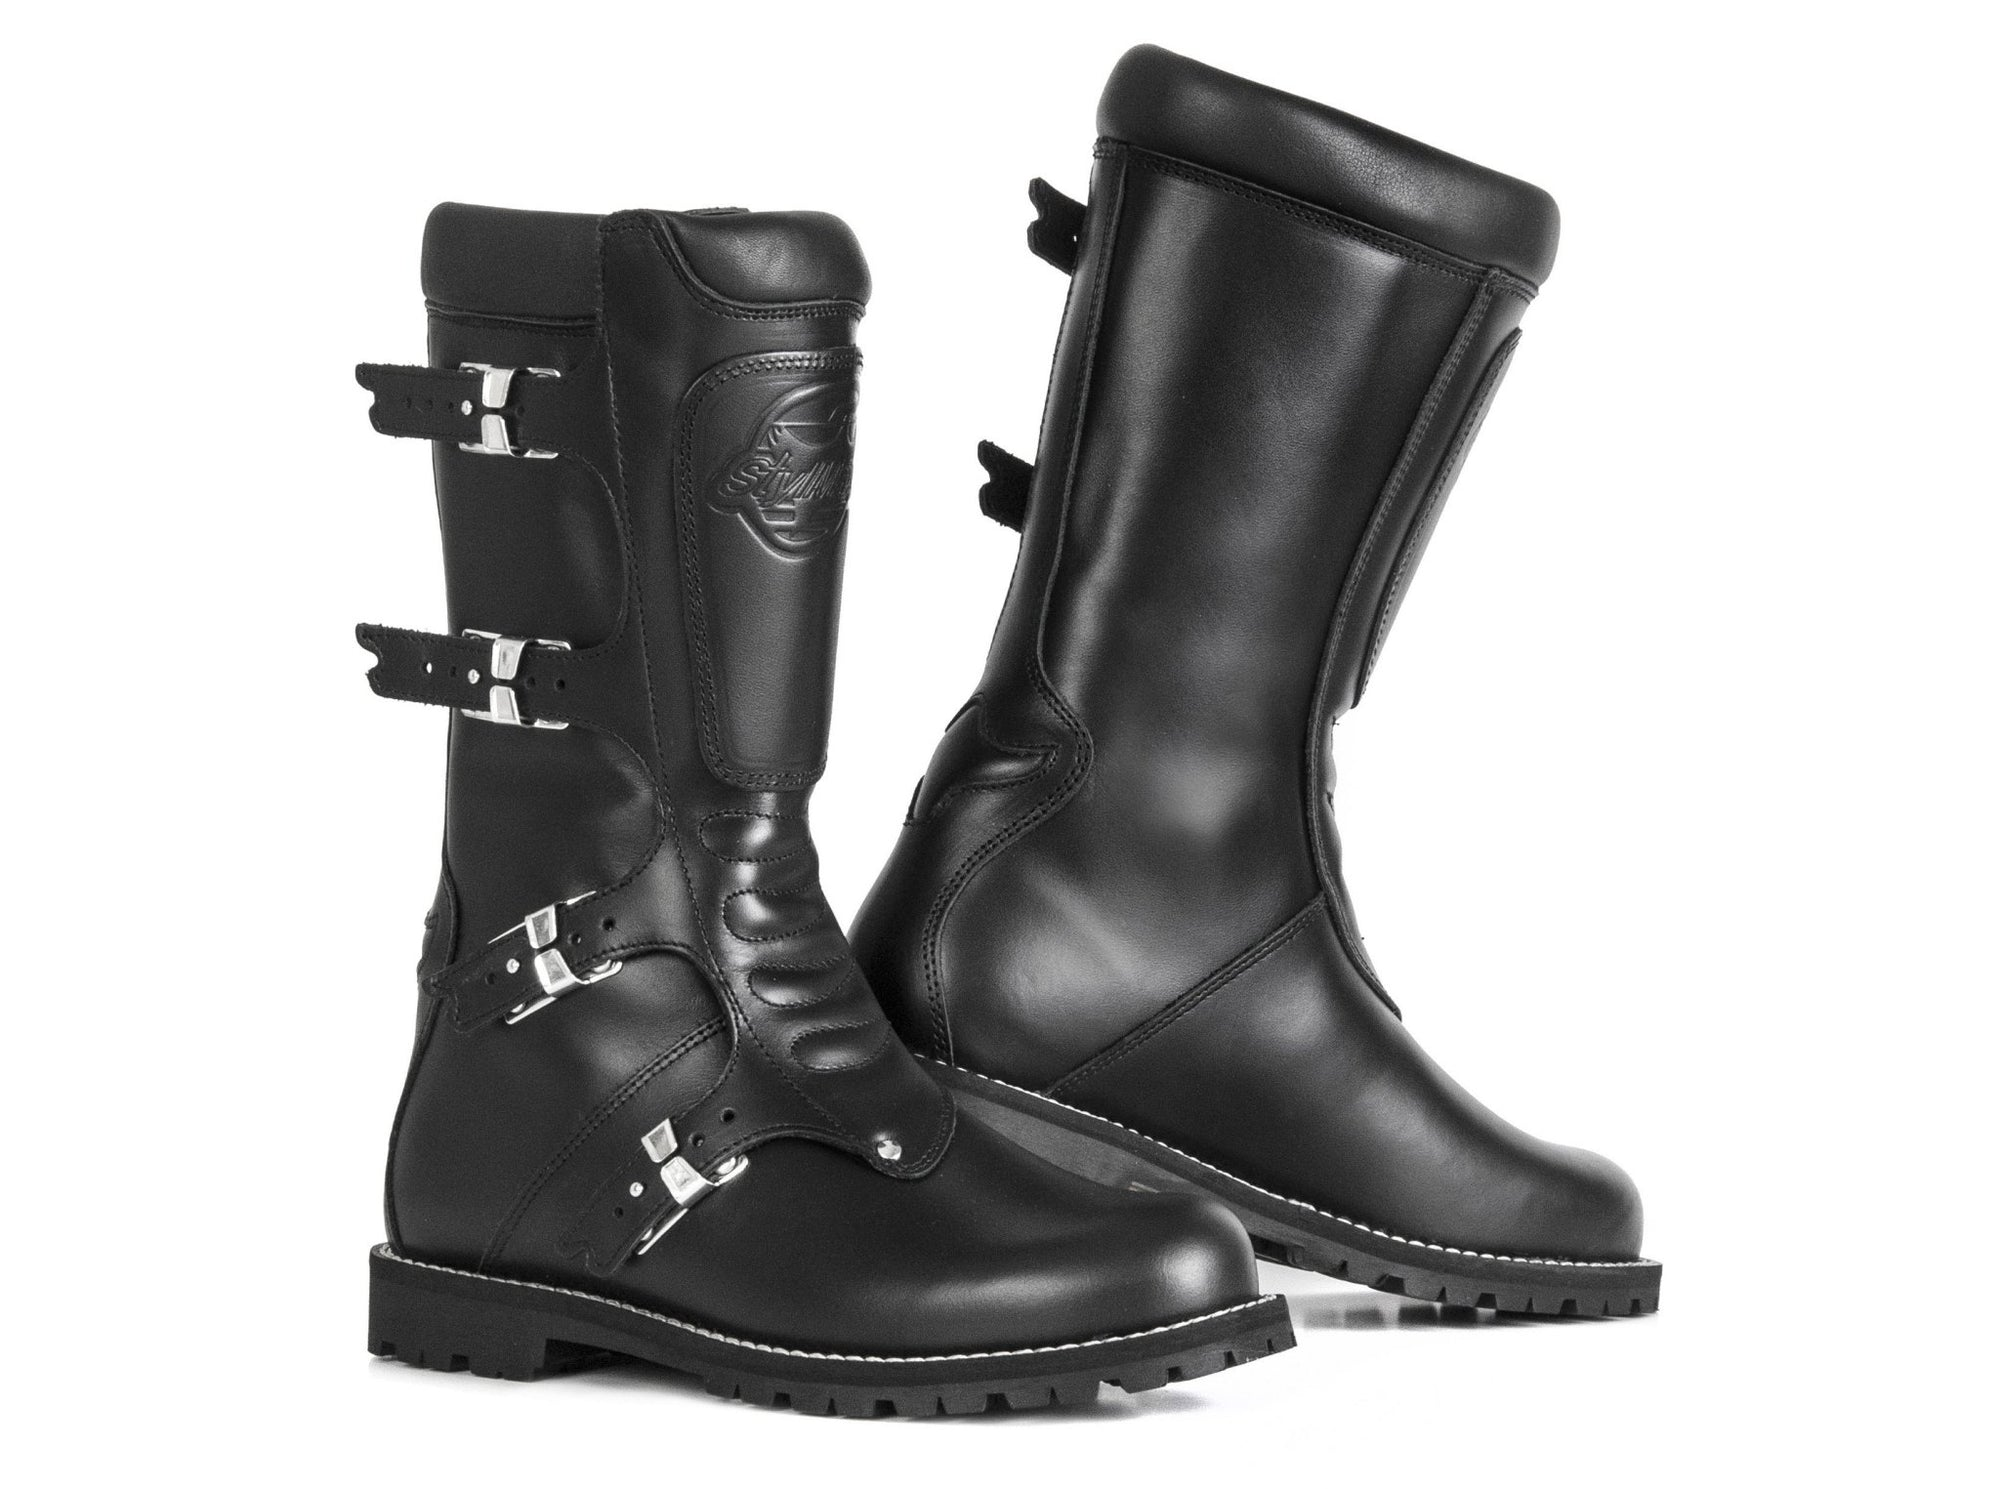 Stylmartin - Stylmartin Continental WP Touring in Black - Boots - Salt Flats Clothing